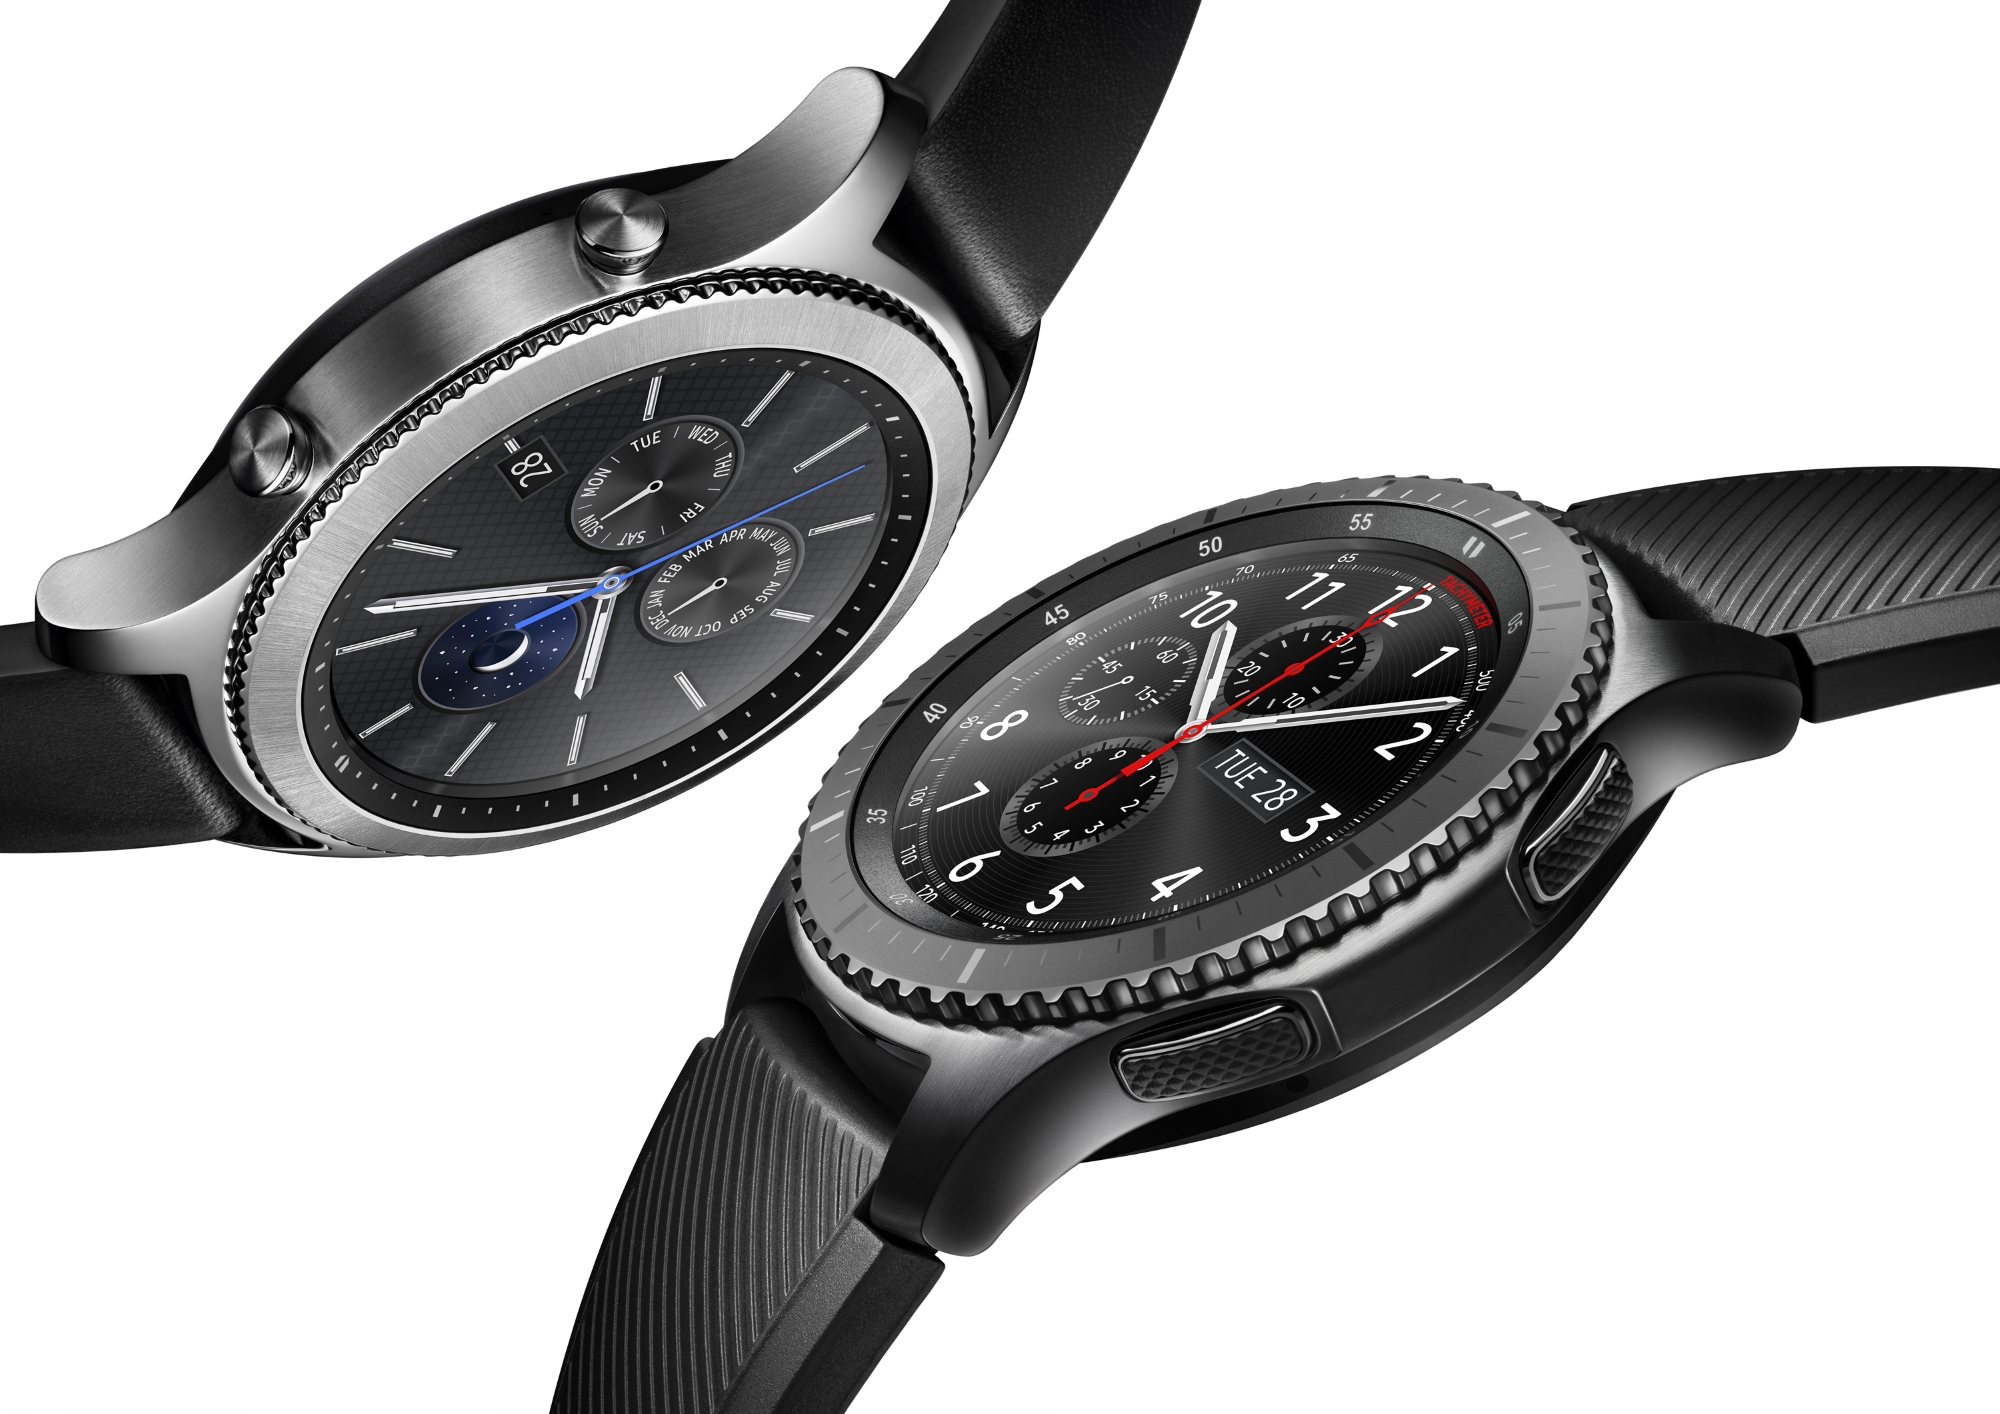 Samsung Finally Brings iOS App for Gear Smartwatches